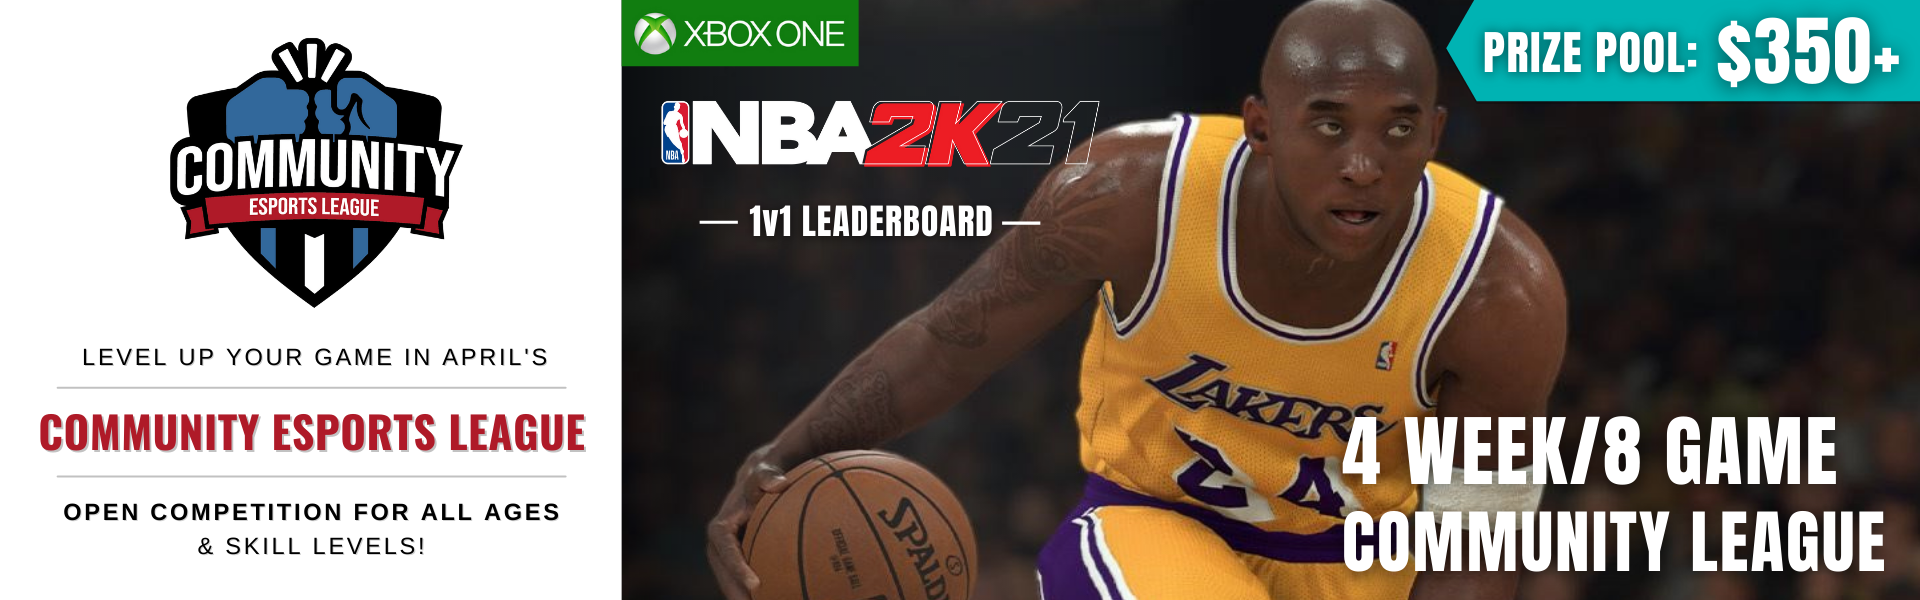 April CEL: Featuring NBA2K21 - Xbox One